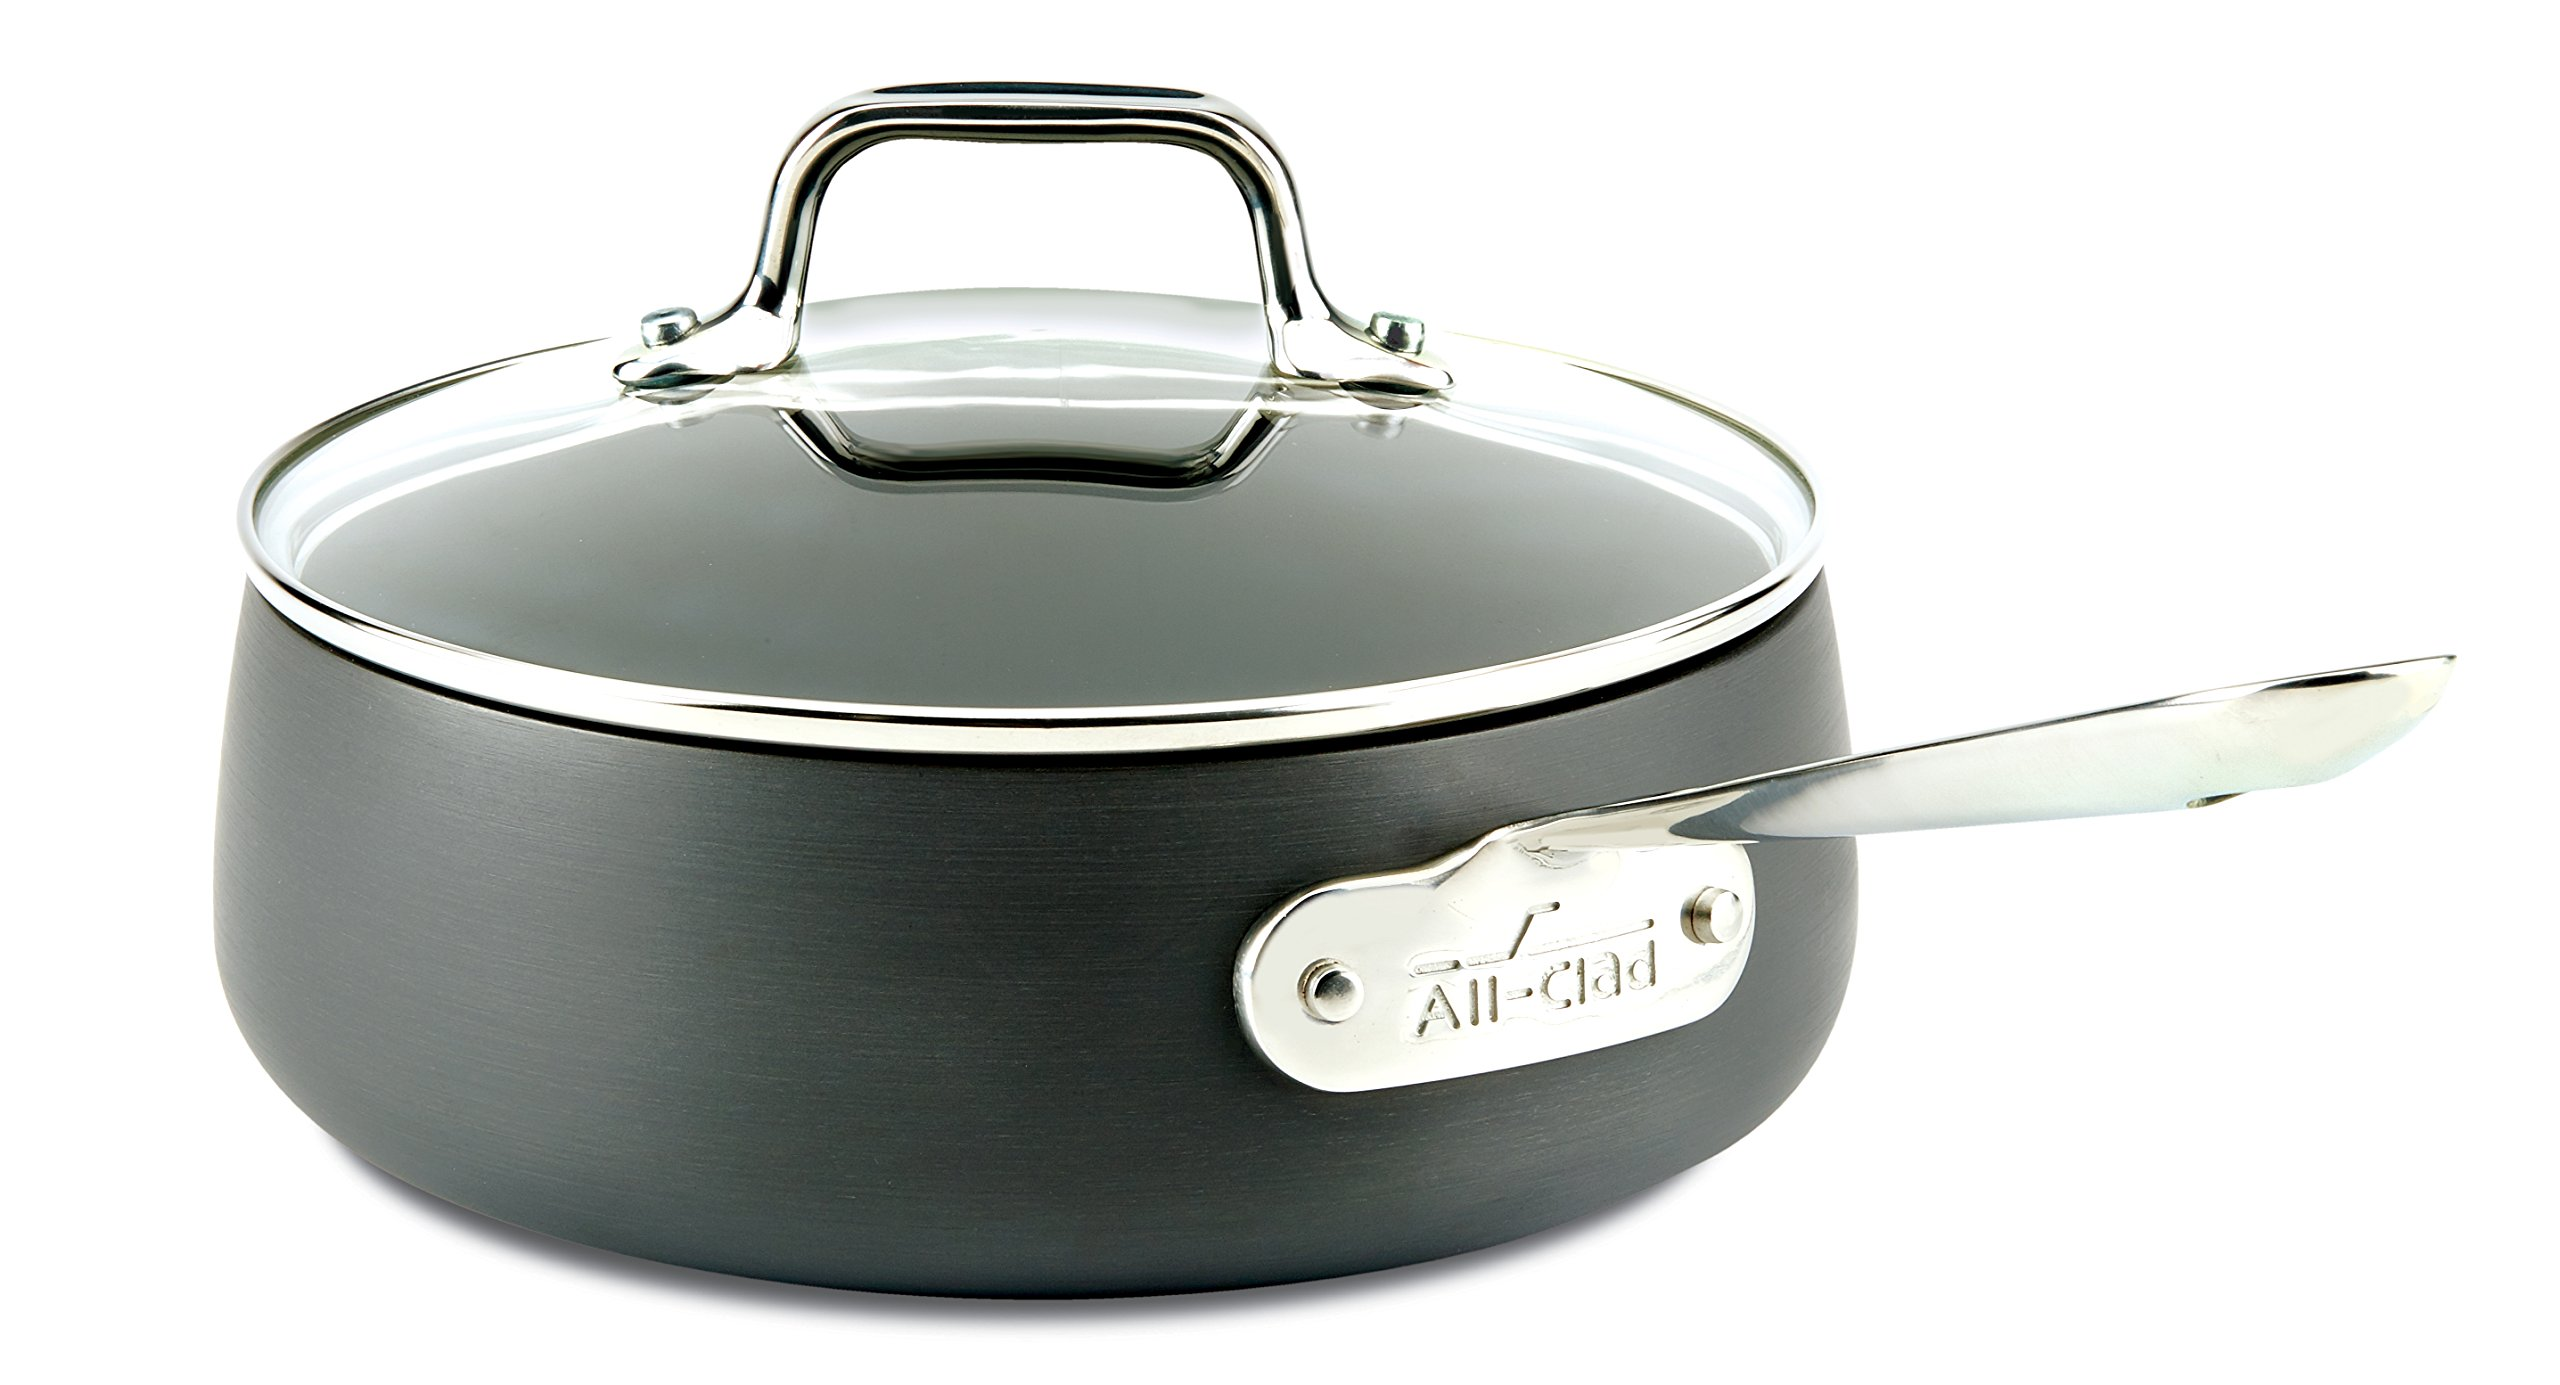 All-Clad E7852664 HA1 Hard Anodized Nonstick Dishwasher Safe PFOA Free Sauce Pan Cookware, 2.5-Quart, Black by All-Clad